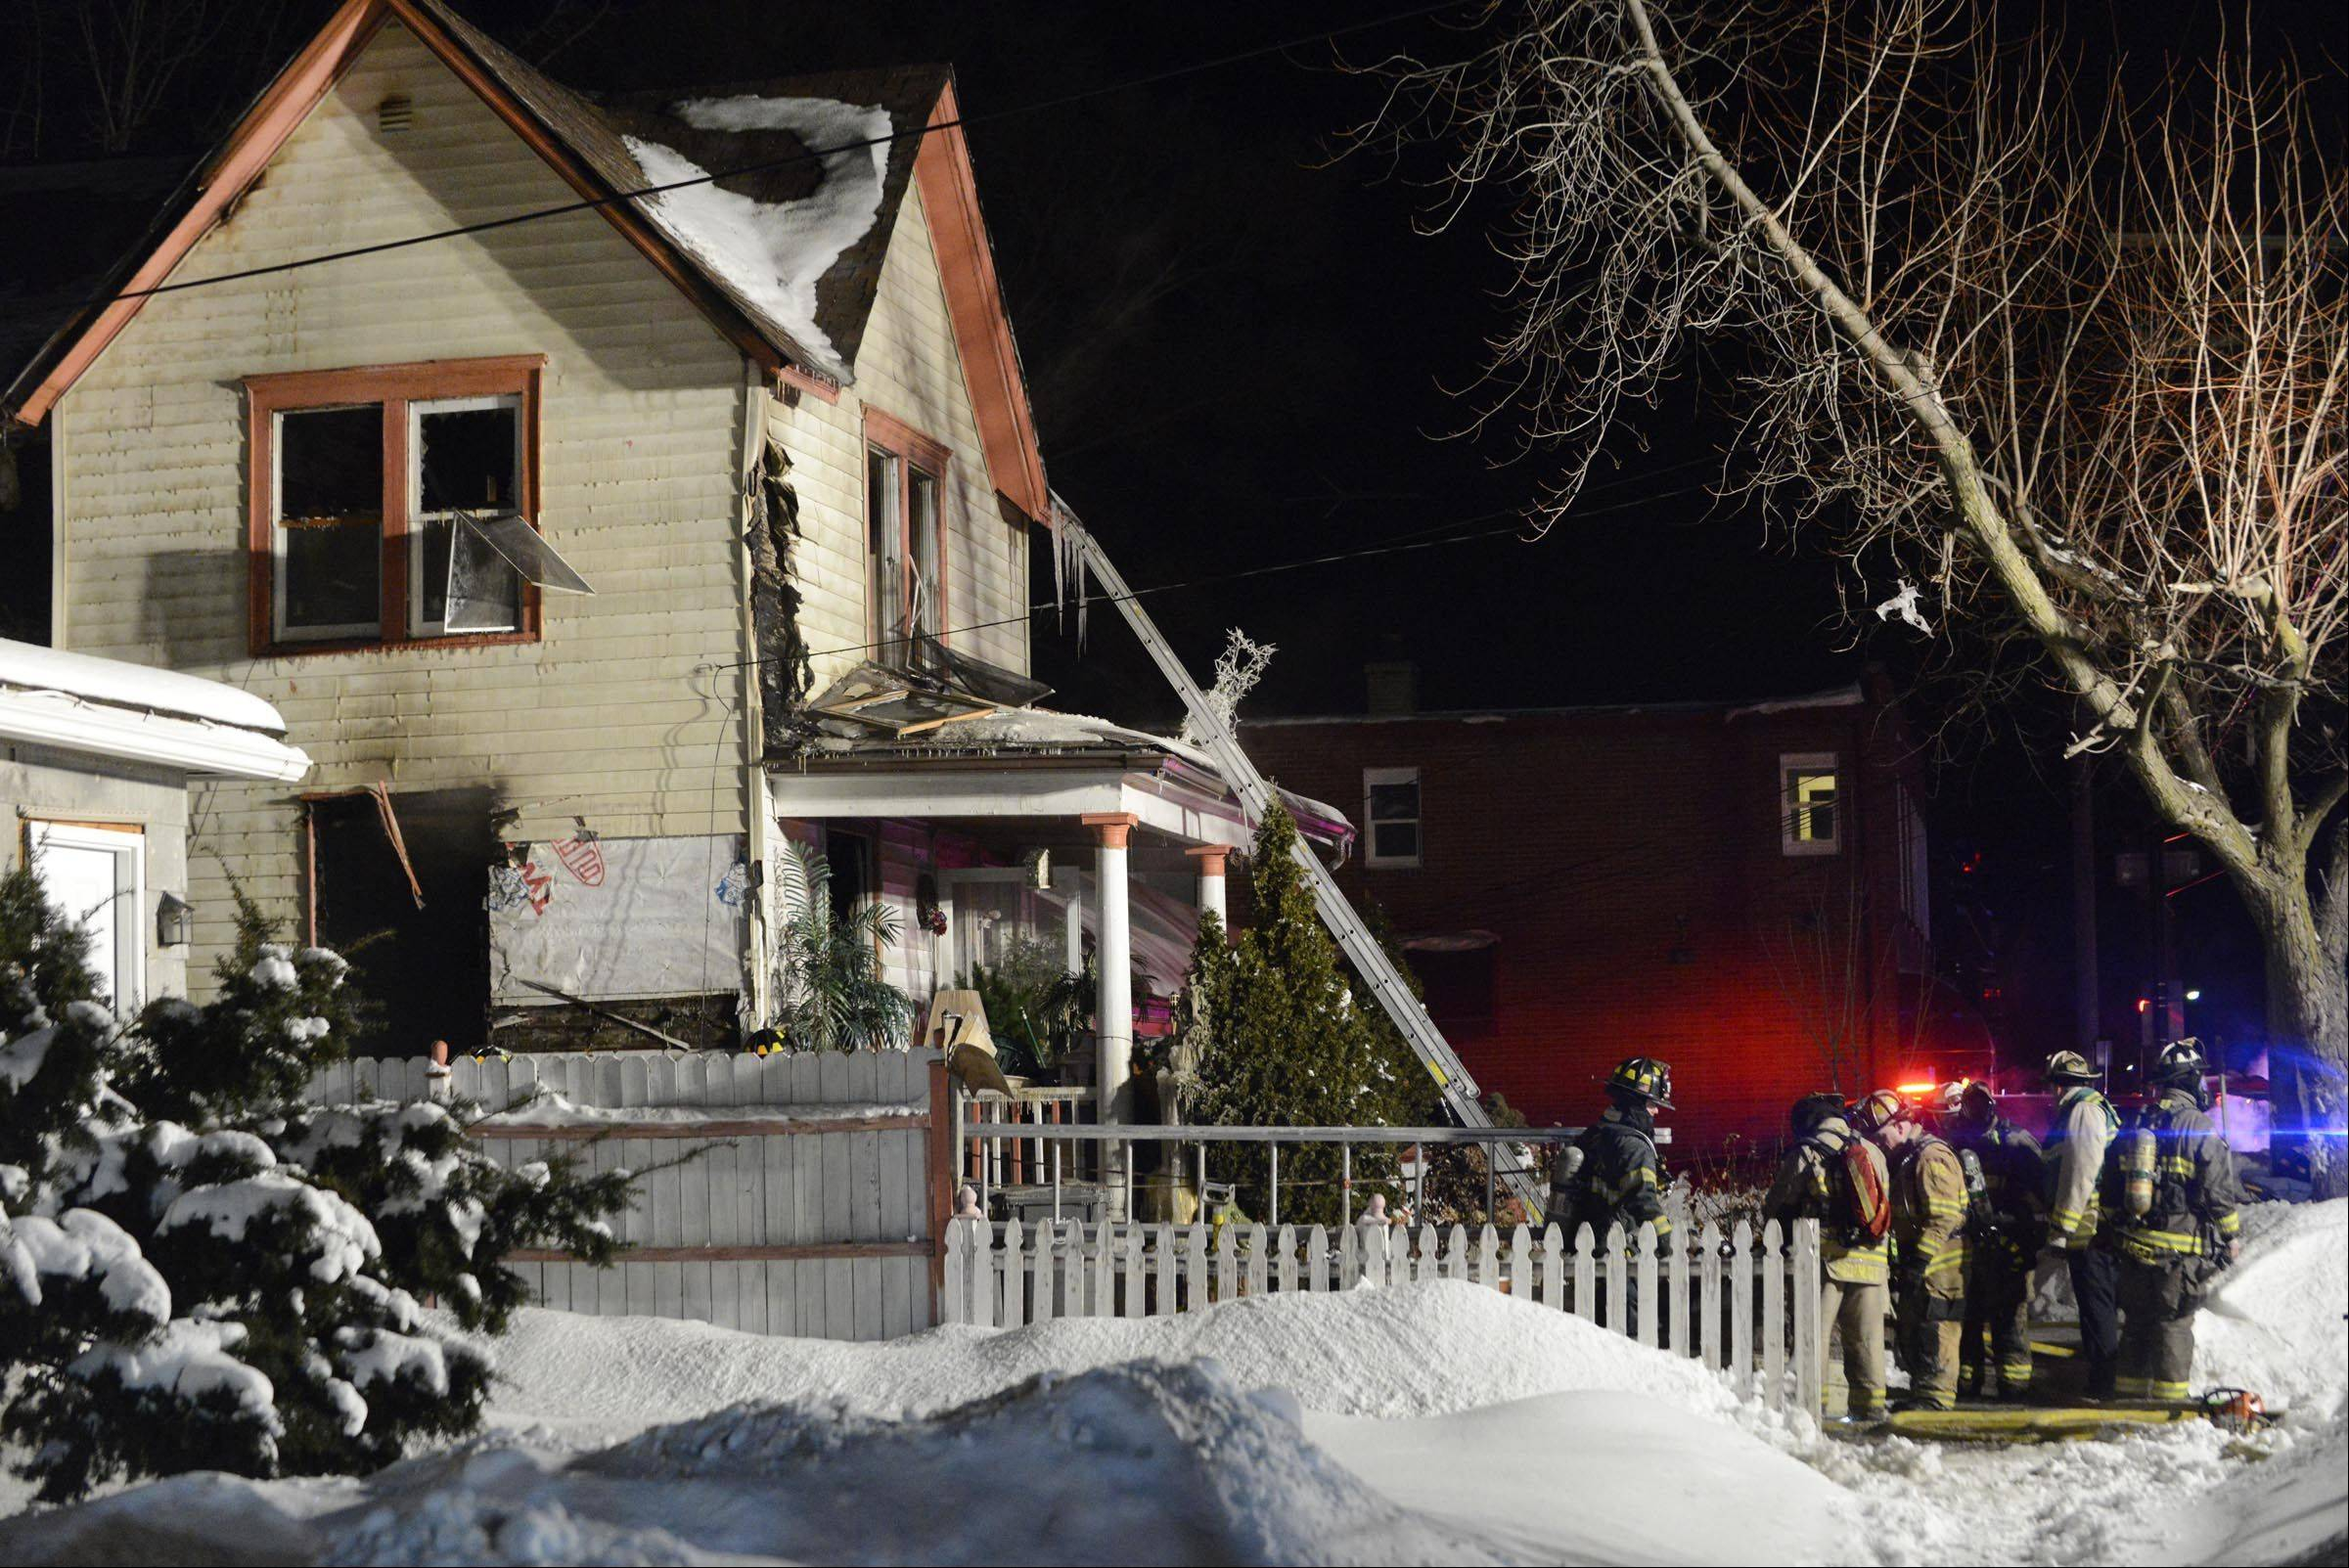 Firefighters work at the scene of a house fire Thursday night near the intersection of Route 25 and Villa Street in Elgin.